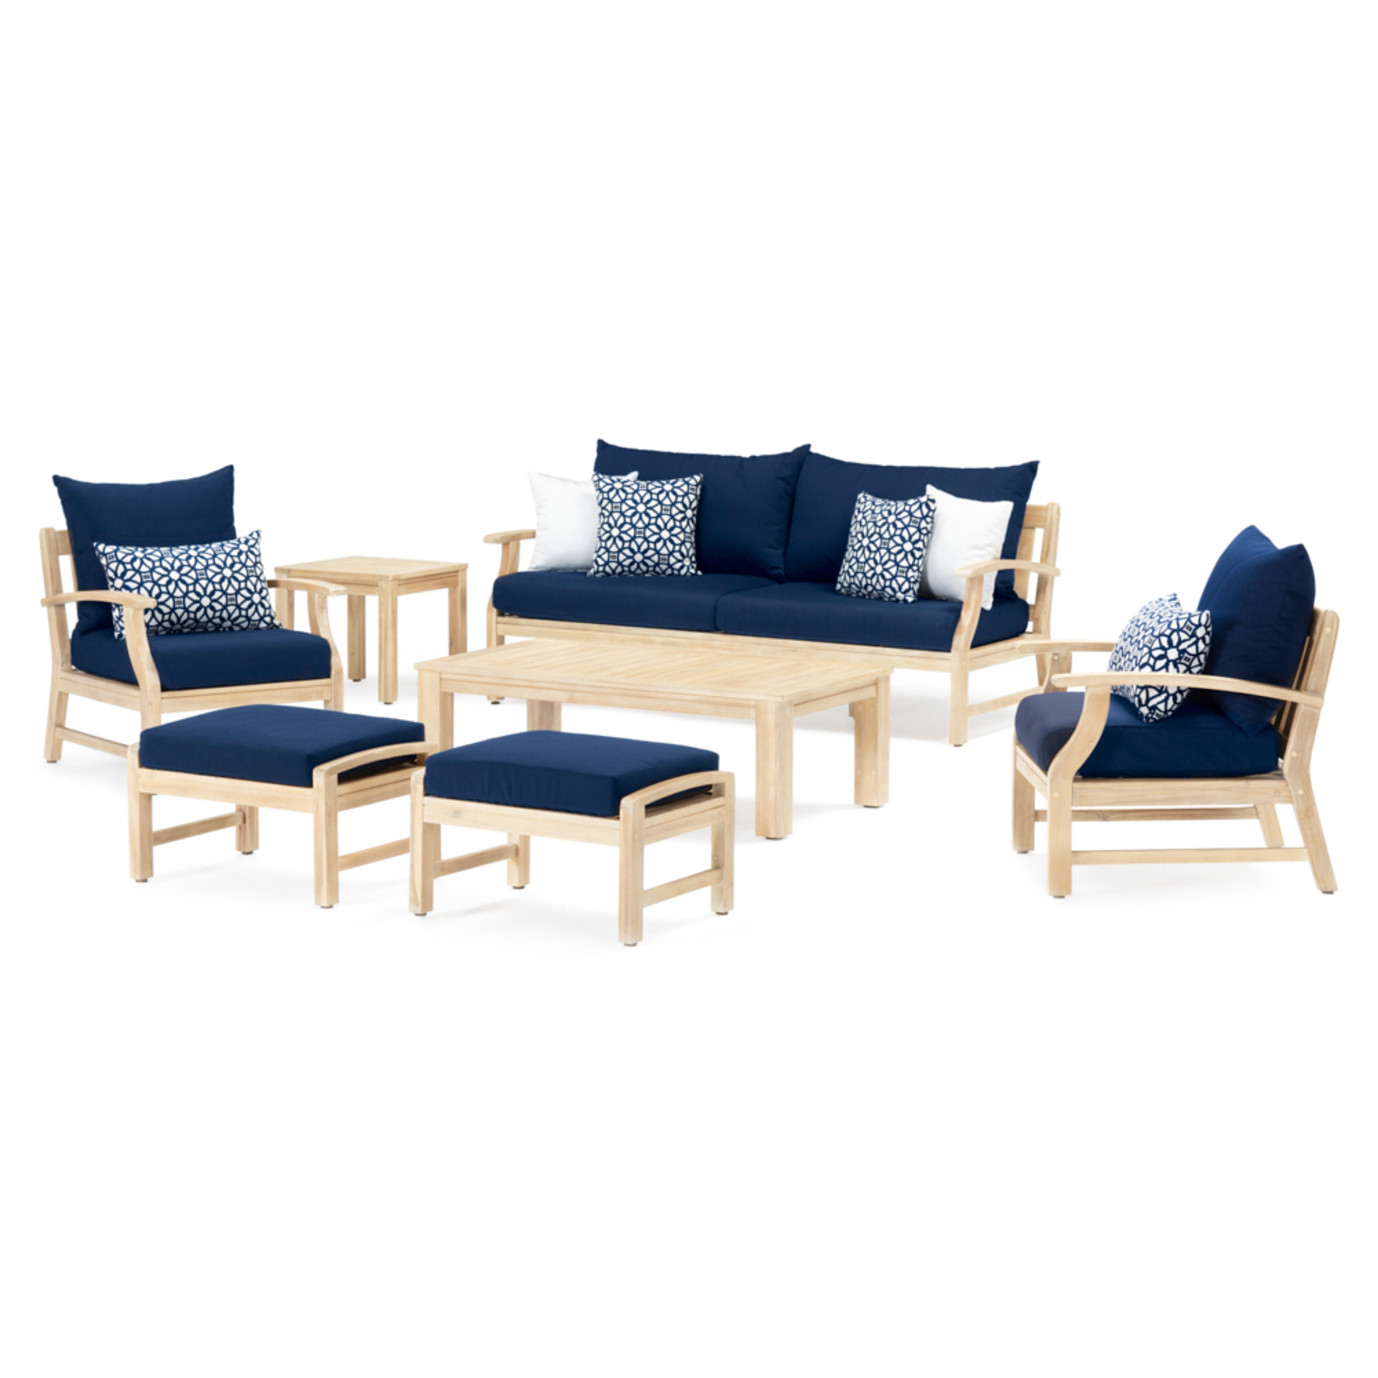 Kooper™ 7 Piece Outdoor Sofa & Club Chair Set - Navy Blue